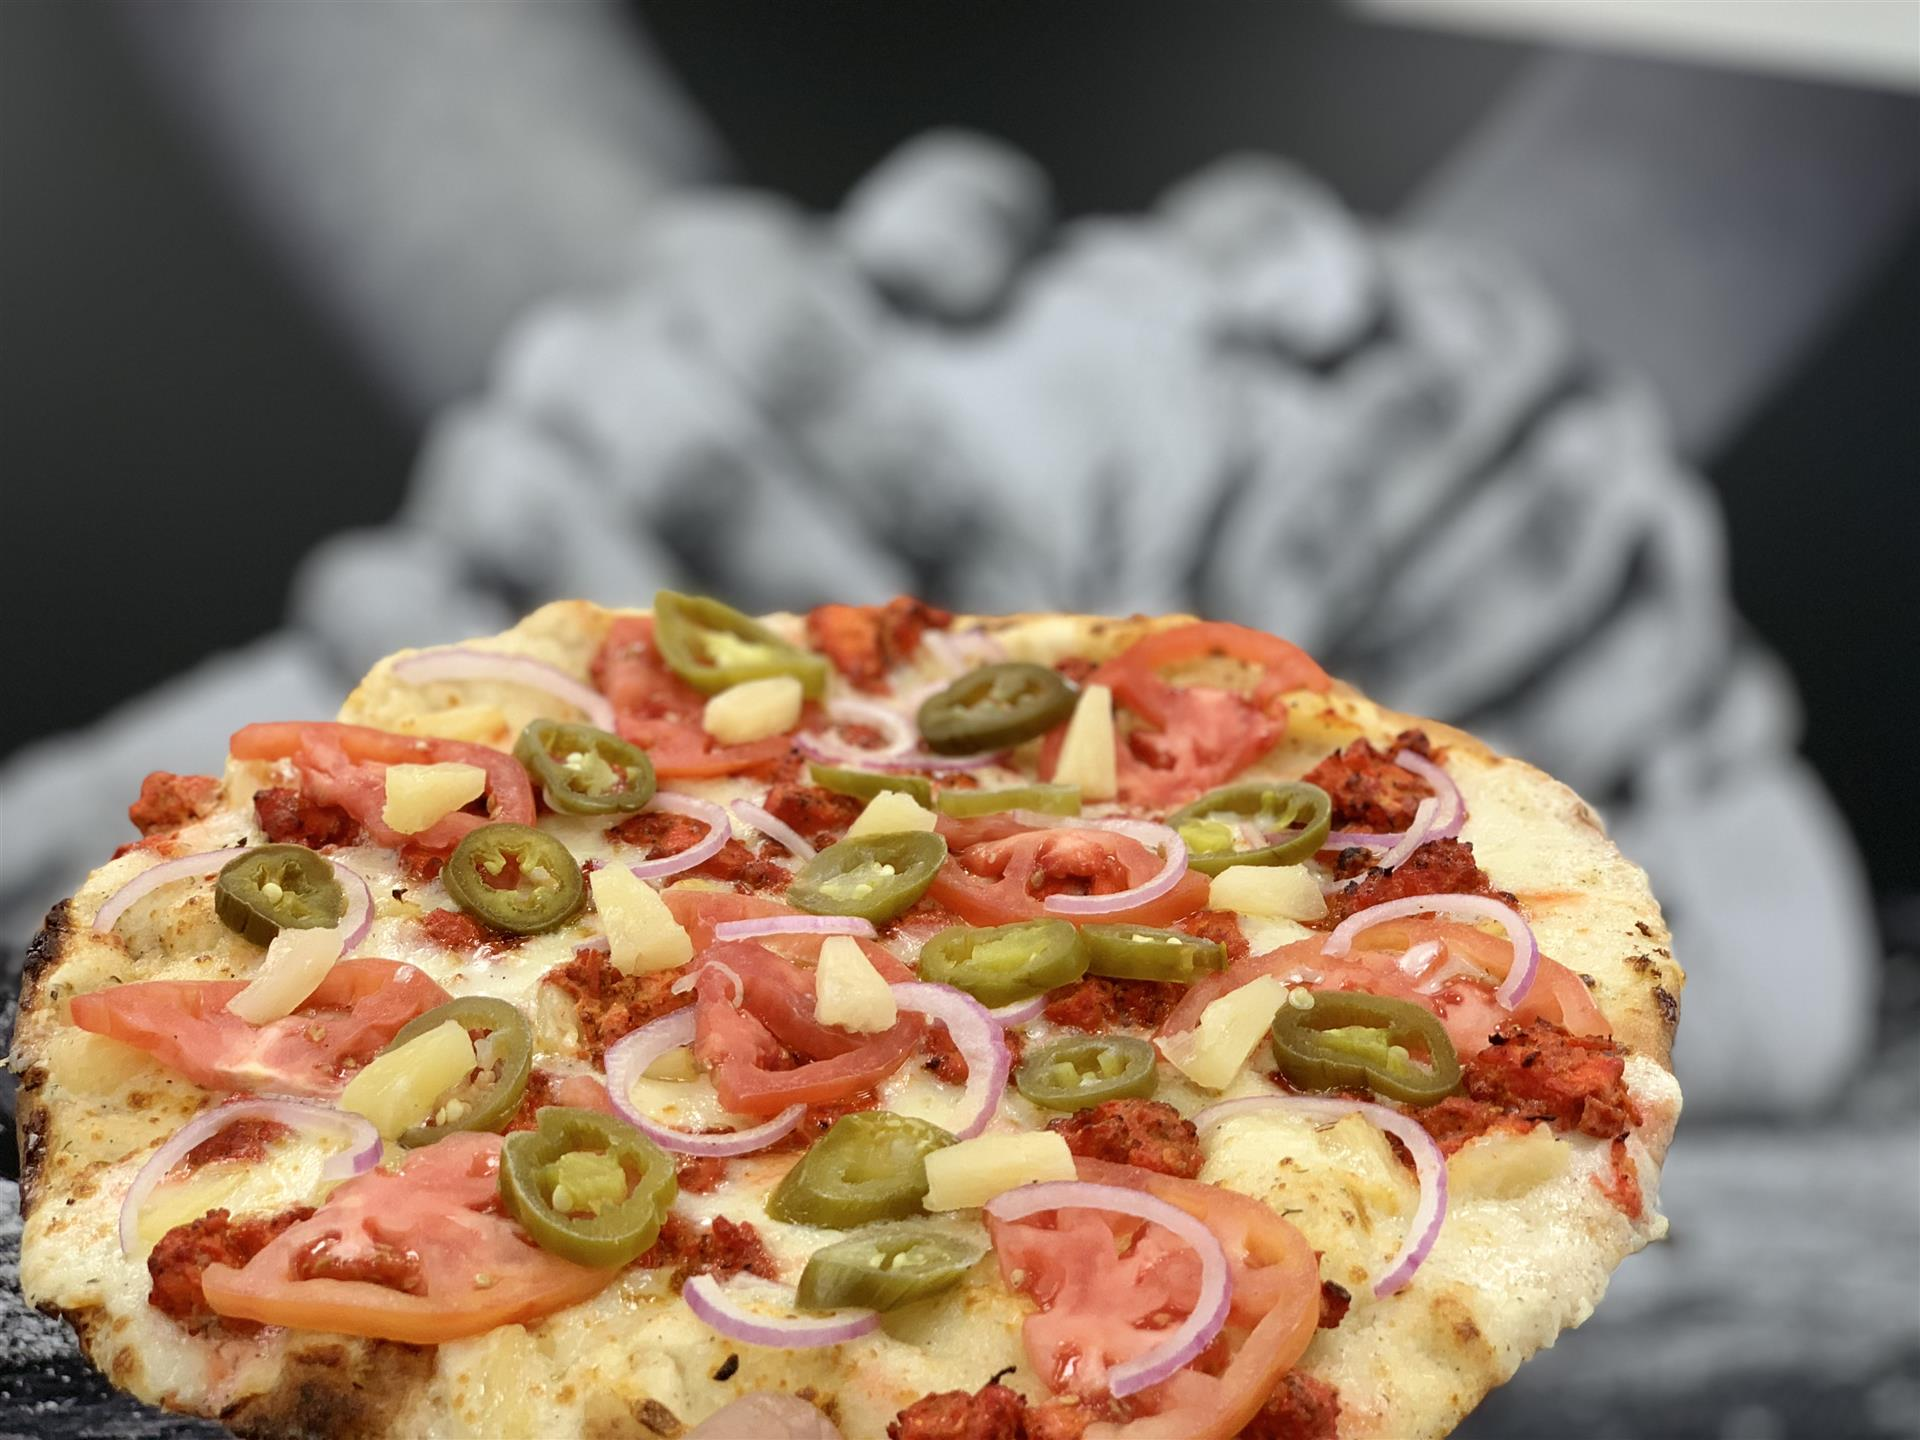 pizza with tomatoes, onions, jalapenos and pineapples